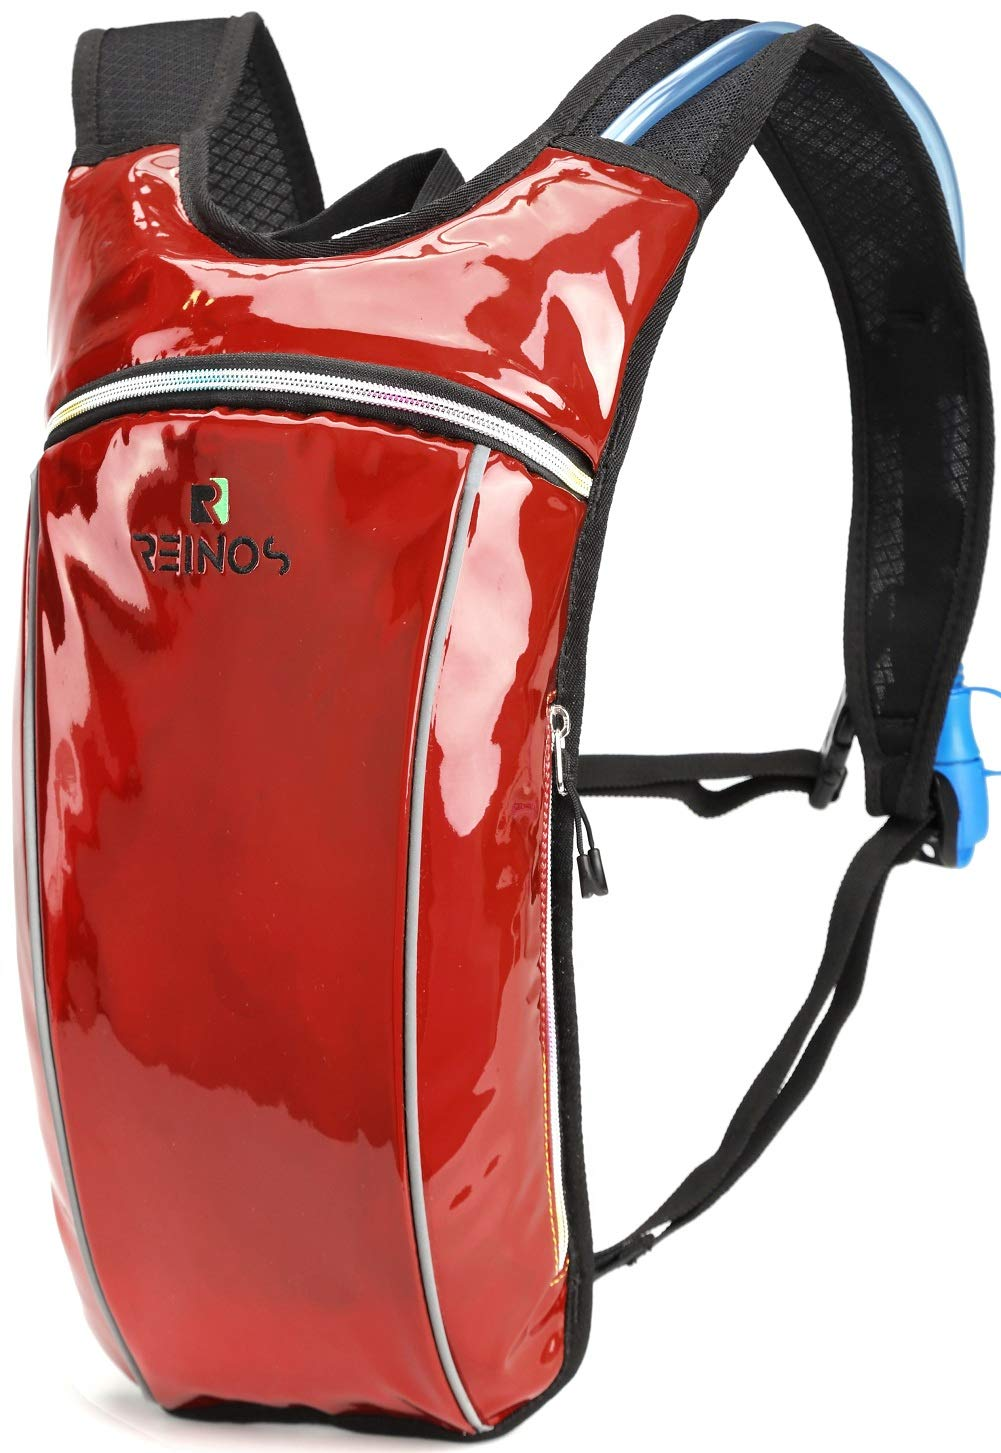 Hydration Backpack - Light Water Pack - 2L Water Bladder Included for Running, Hiking, Biking, Festivals, Raves (Red)